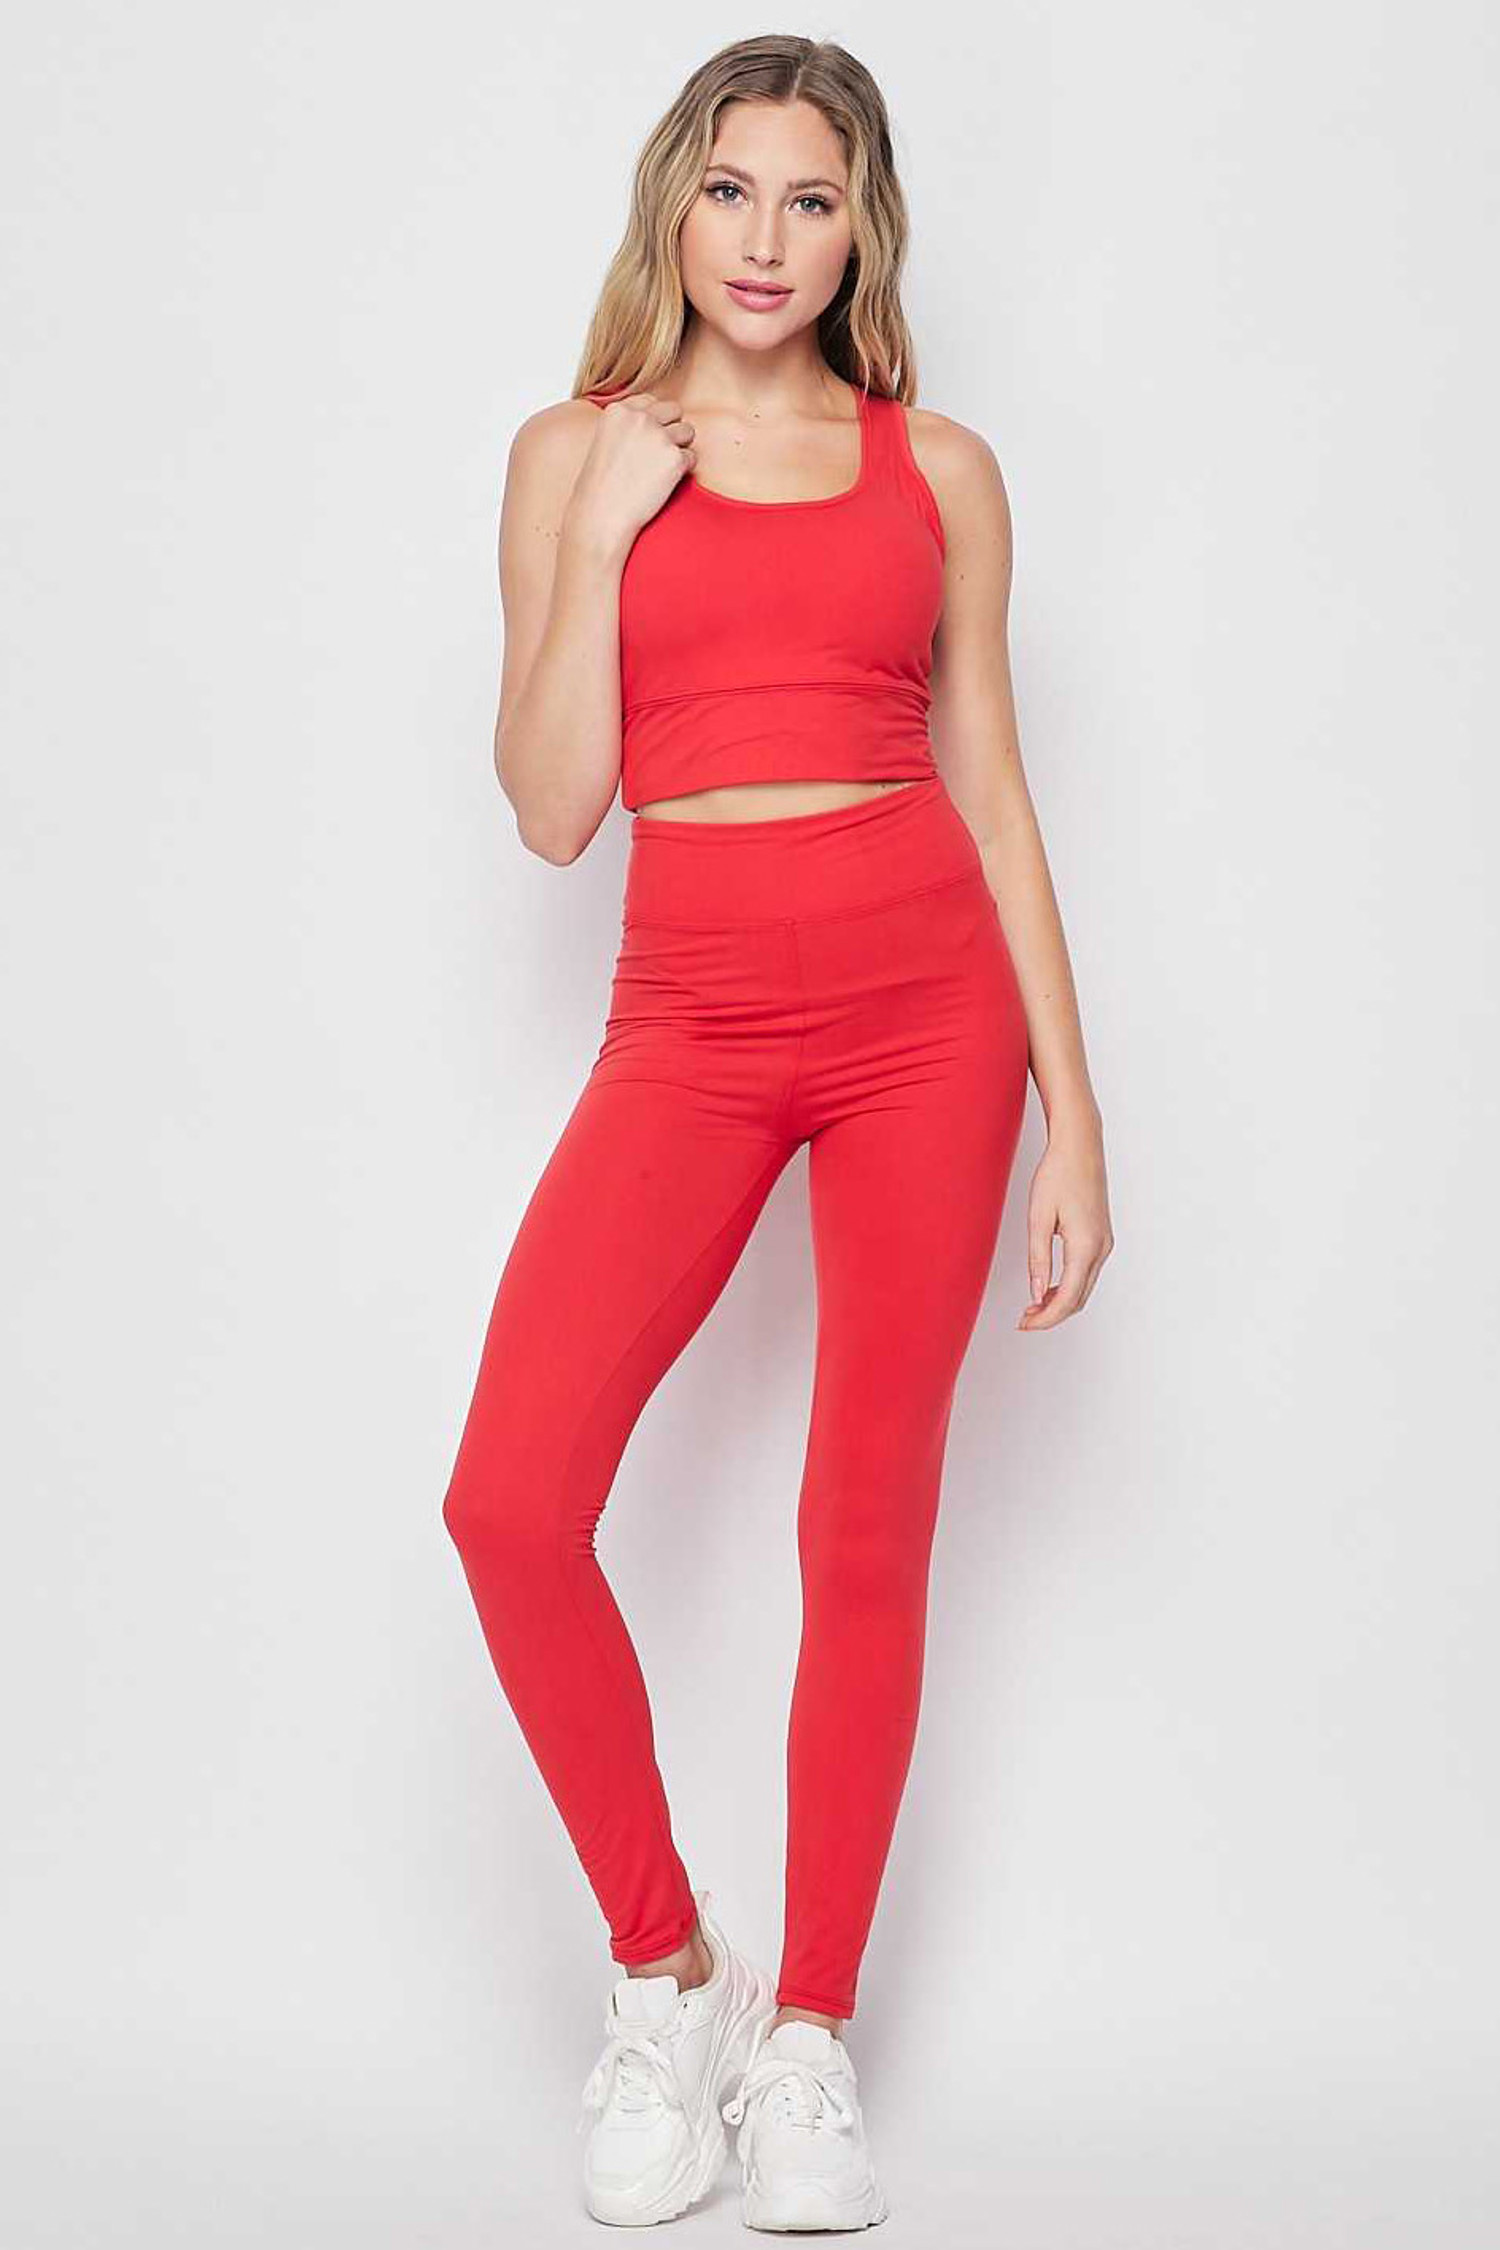 Buttery Soft High Waisted 3 Inch Leggings and Crop Top Bra Set